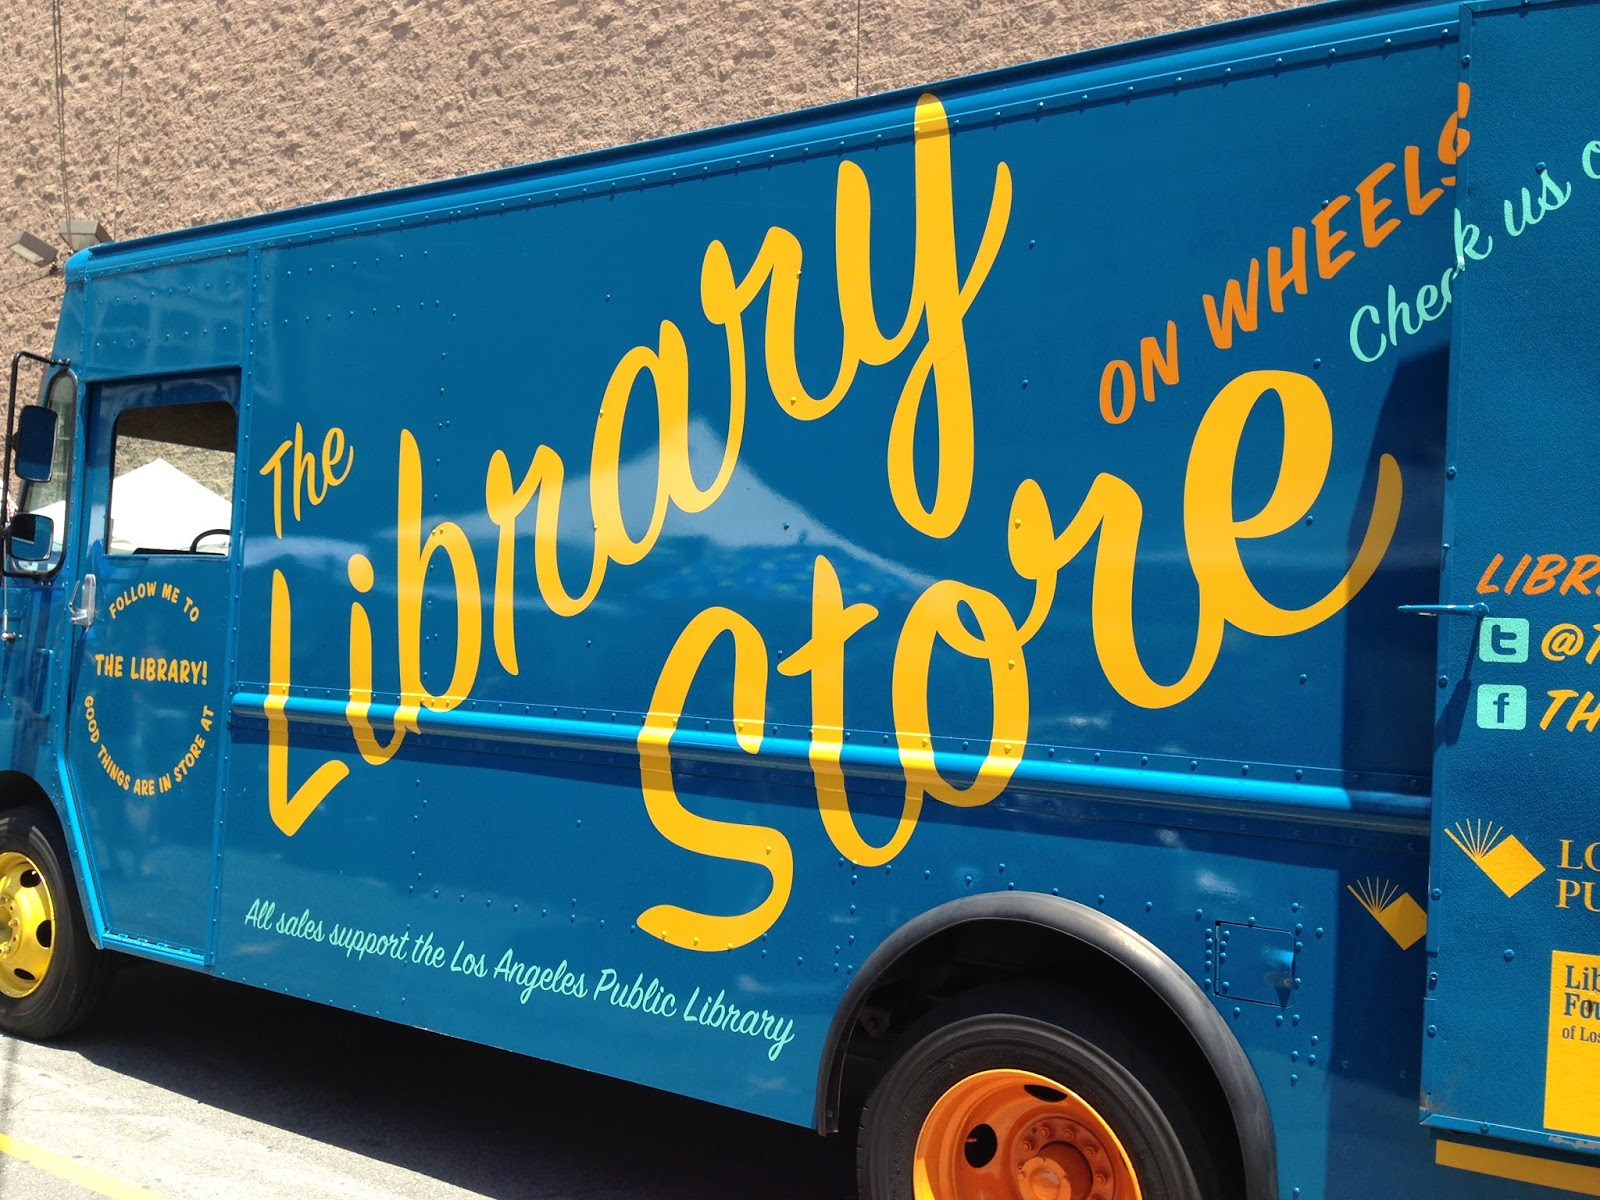 library store on wheels